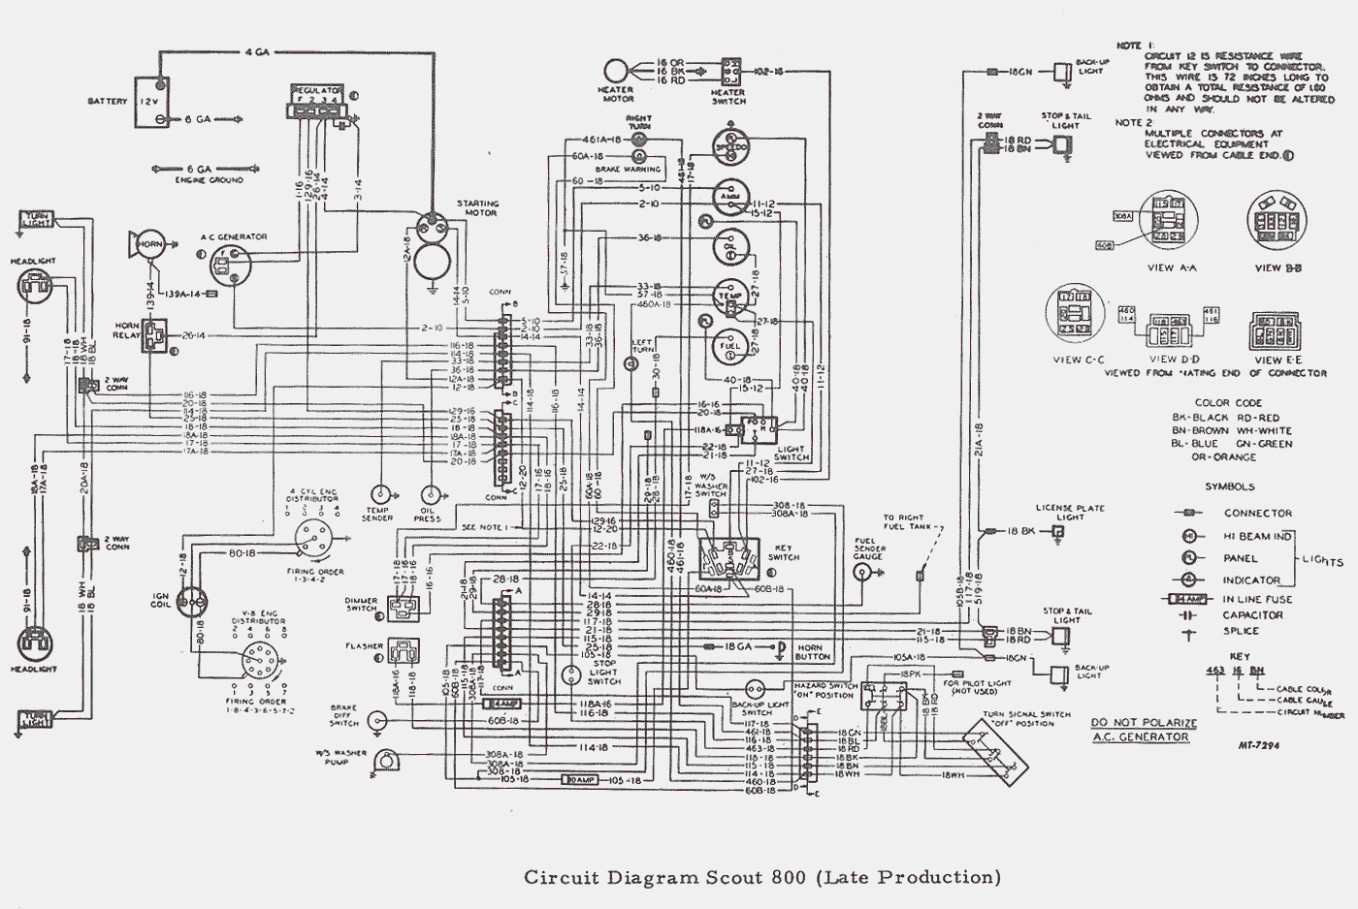 [DIAGRAM_5NL]  1066 International Tractor Wiring Diagram - 1992 Z28 Show Camaro Alternator Wiring  Diagram for Wiring Diagram Schematics | International Tractor Wiring Diagrams |  | Wiring Diagram Schematics